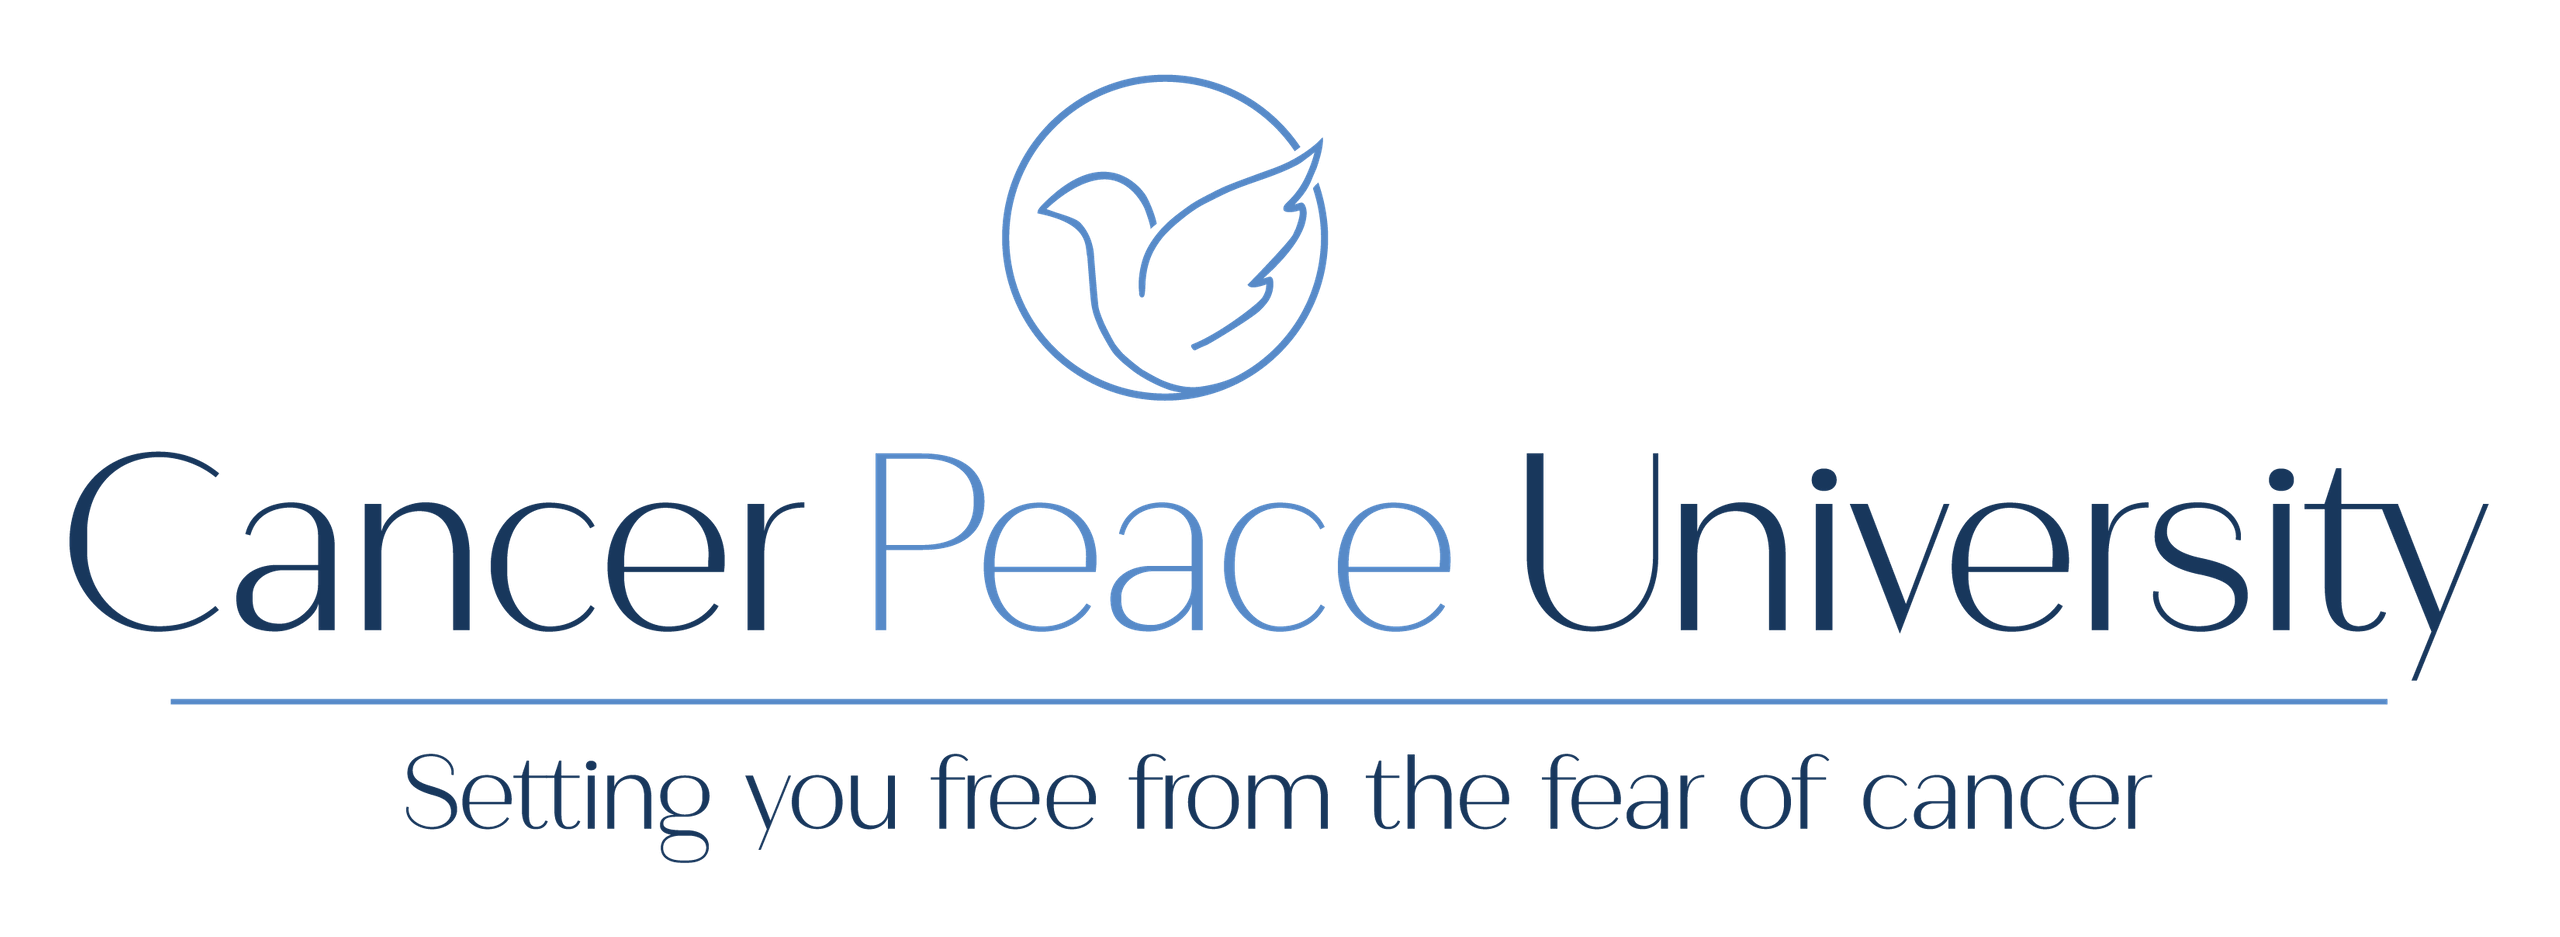 cancer-peace-university